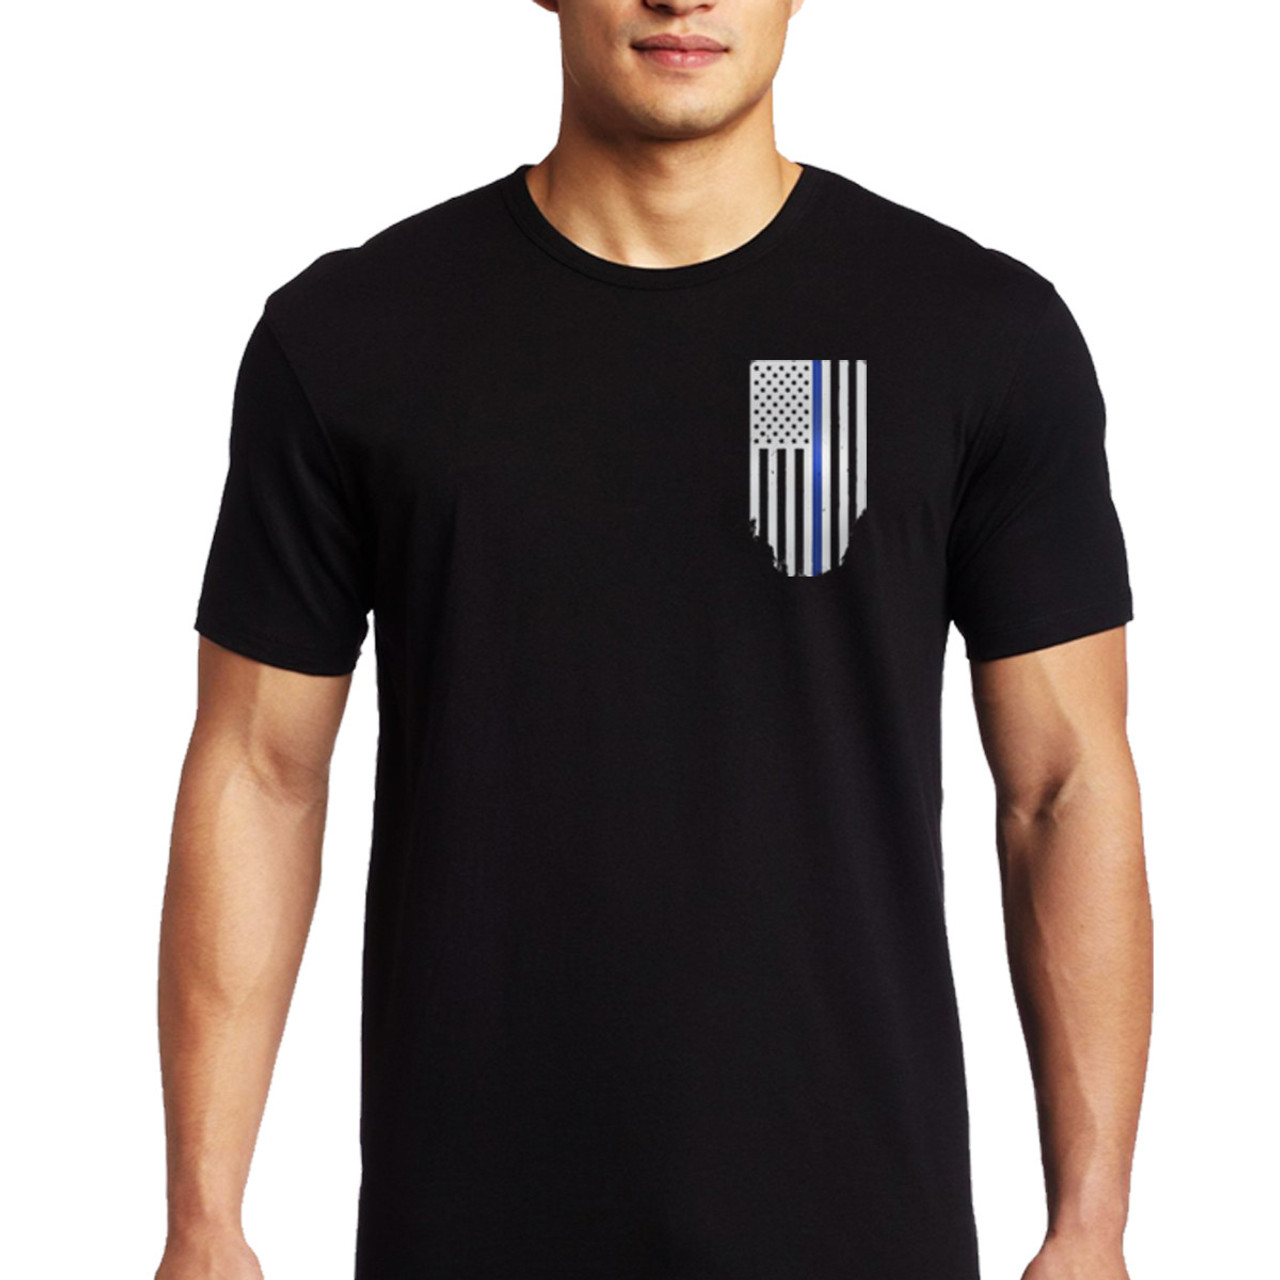 2c8e4ad2 Thin Blue Line Men's Black Flag Short Sleeve T-Shirt | Free Shipping on All  Orders